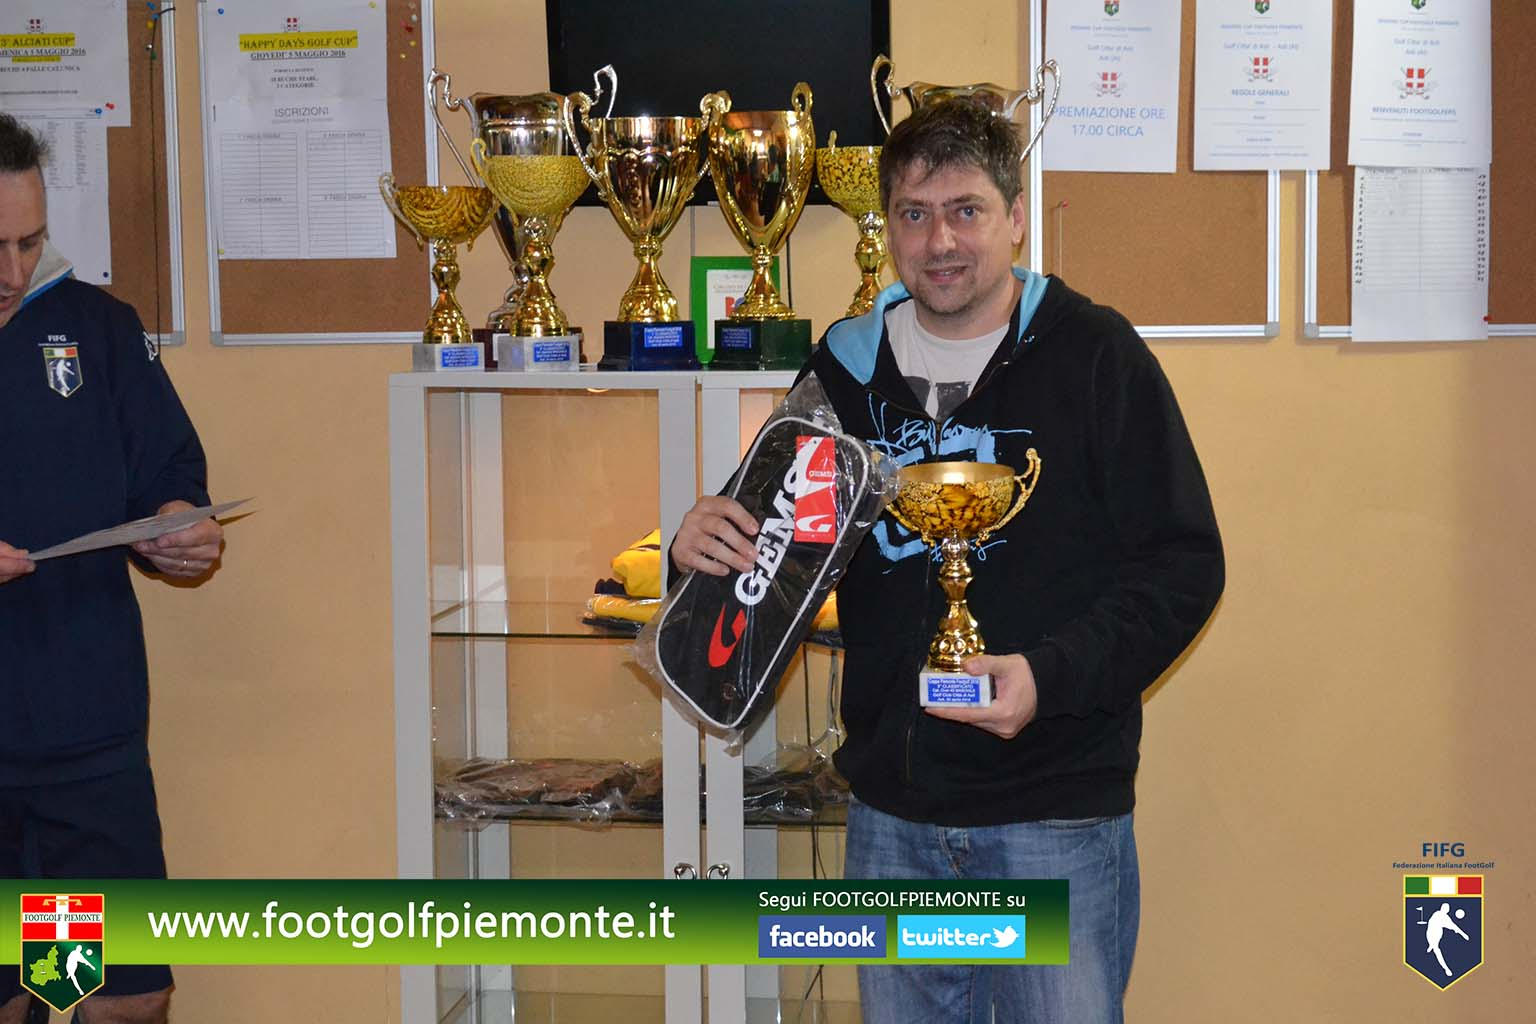 FOTO 9 Regions' Cup Footgolf Piemonte 2016 Golf Città di Asti (At) 30apr16-115